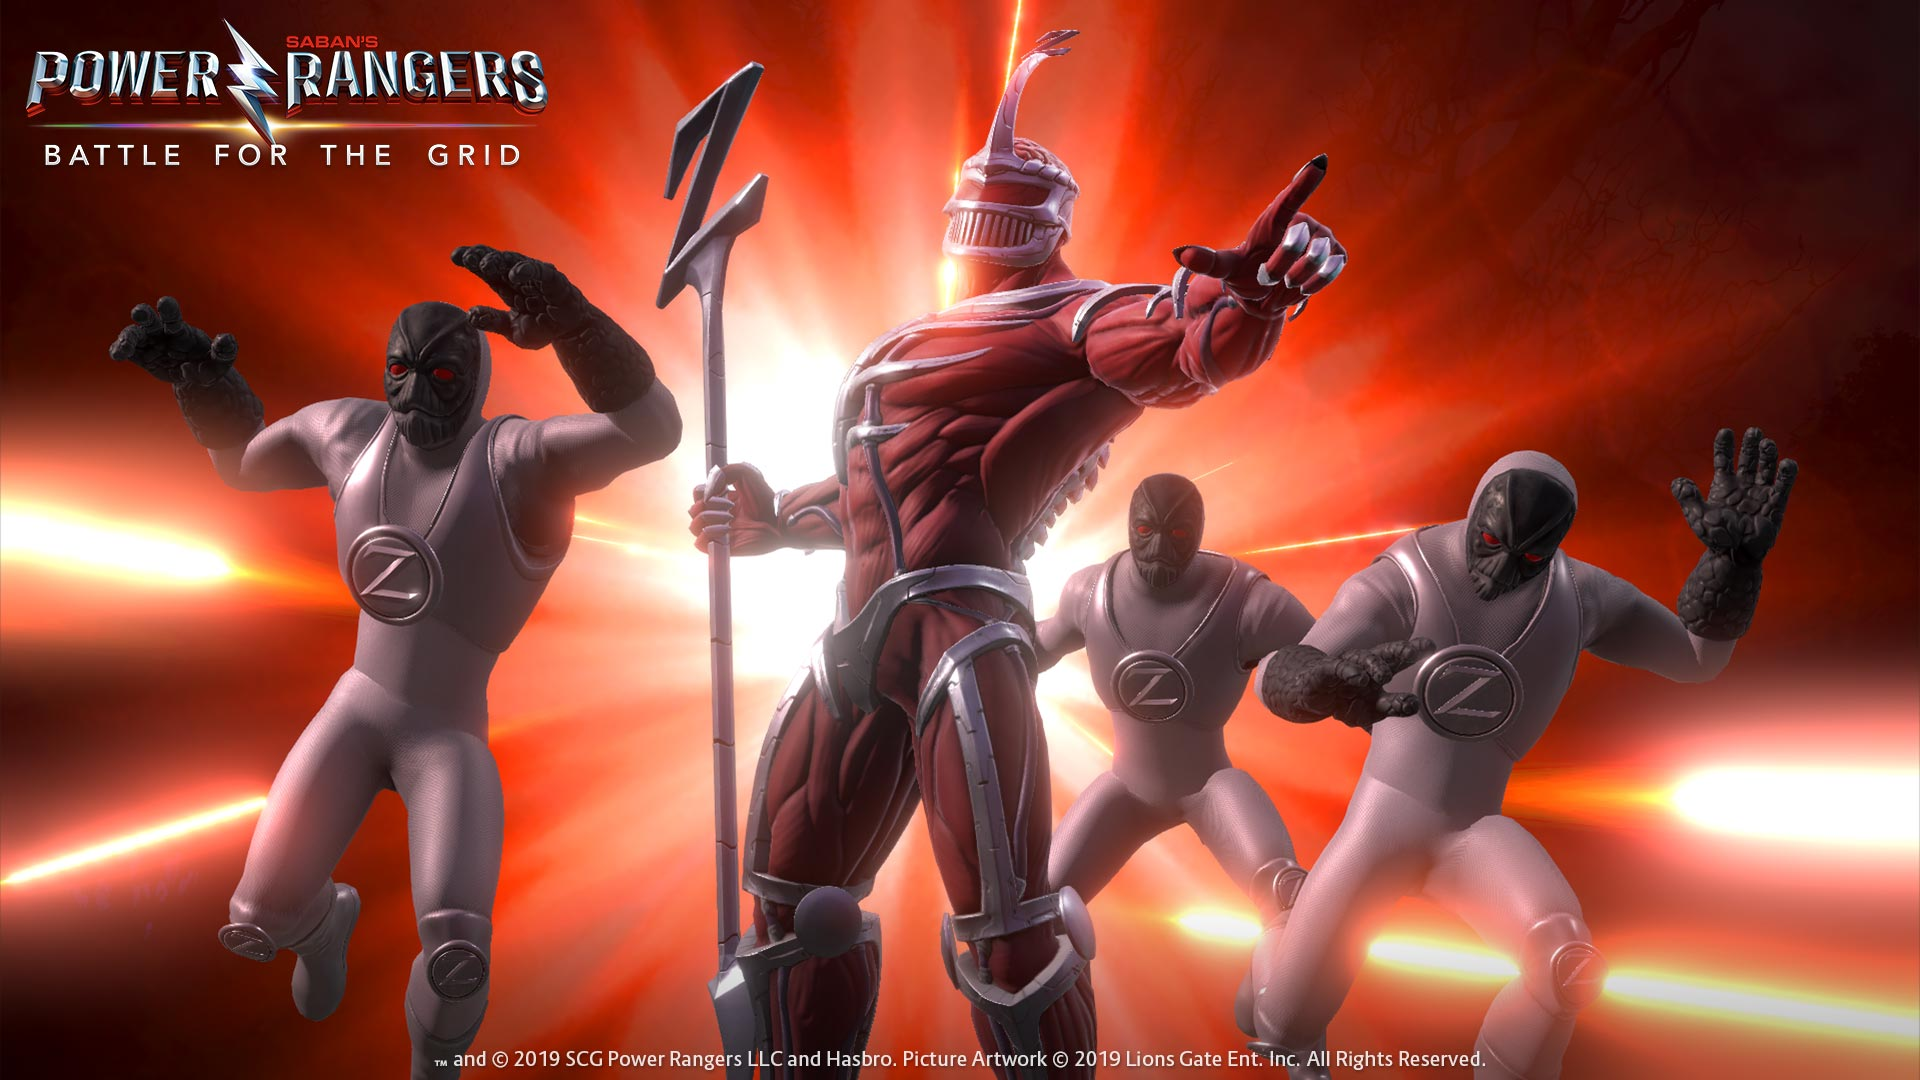 Power Rangers Lord Zedd 2 out of 6 image gallery